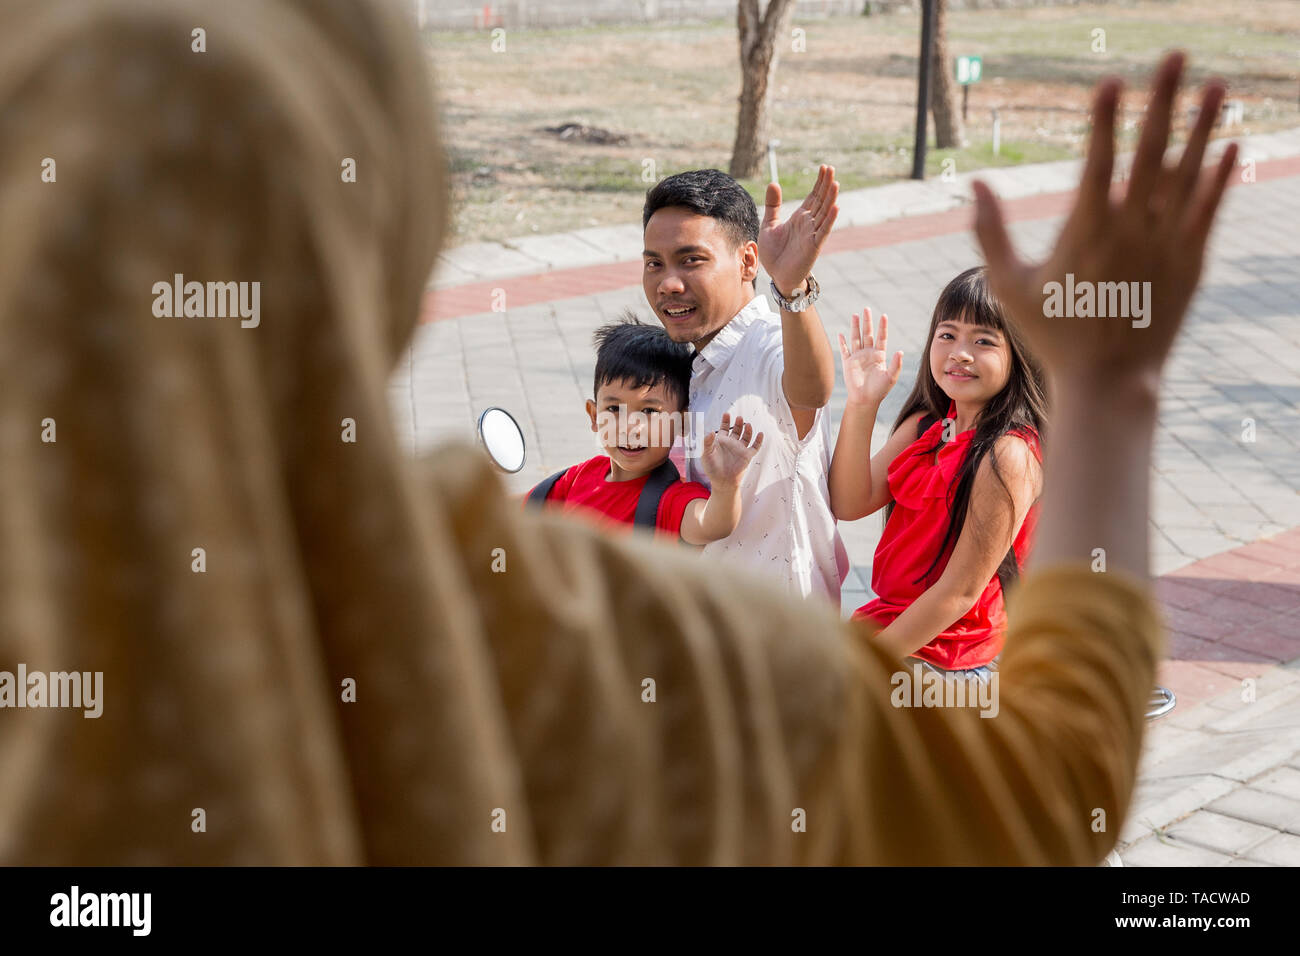 portrait of daddy taking his kids to school by motor bike waving goodbye to mommy - Stock Image